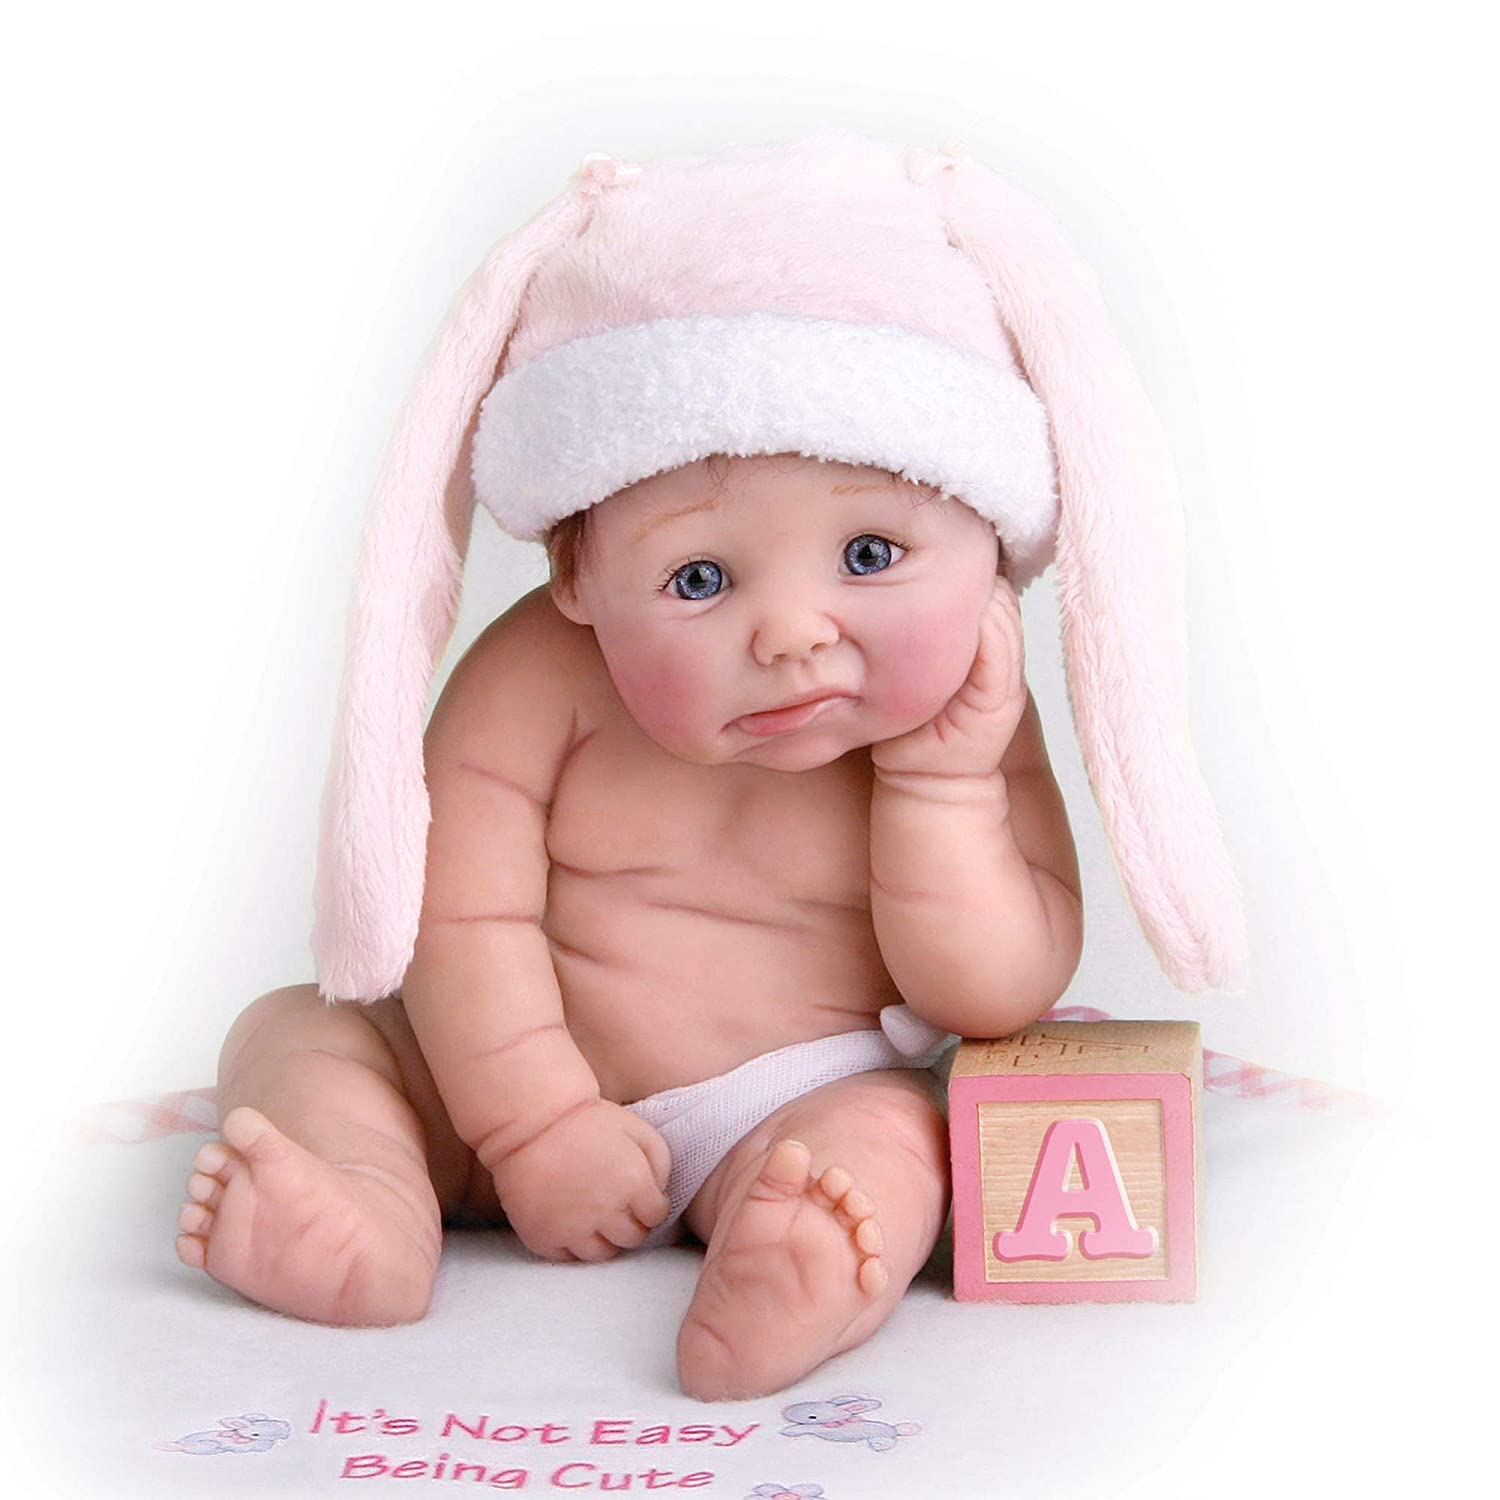 Ashton Drake 'It's Not Easy Being Cute' - Lifelike Miniature Baby Doll by Sherry Rawn - Artist's Resin